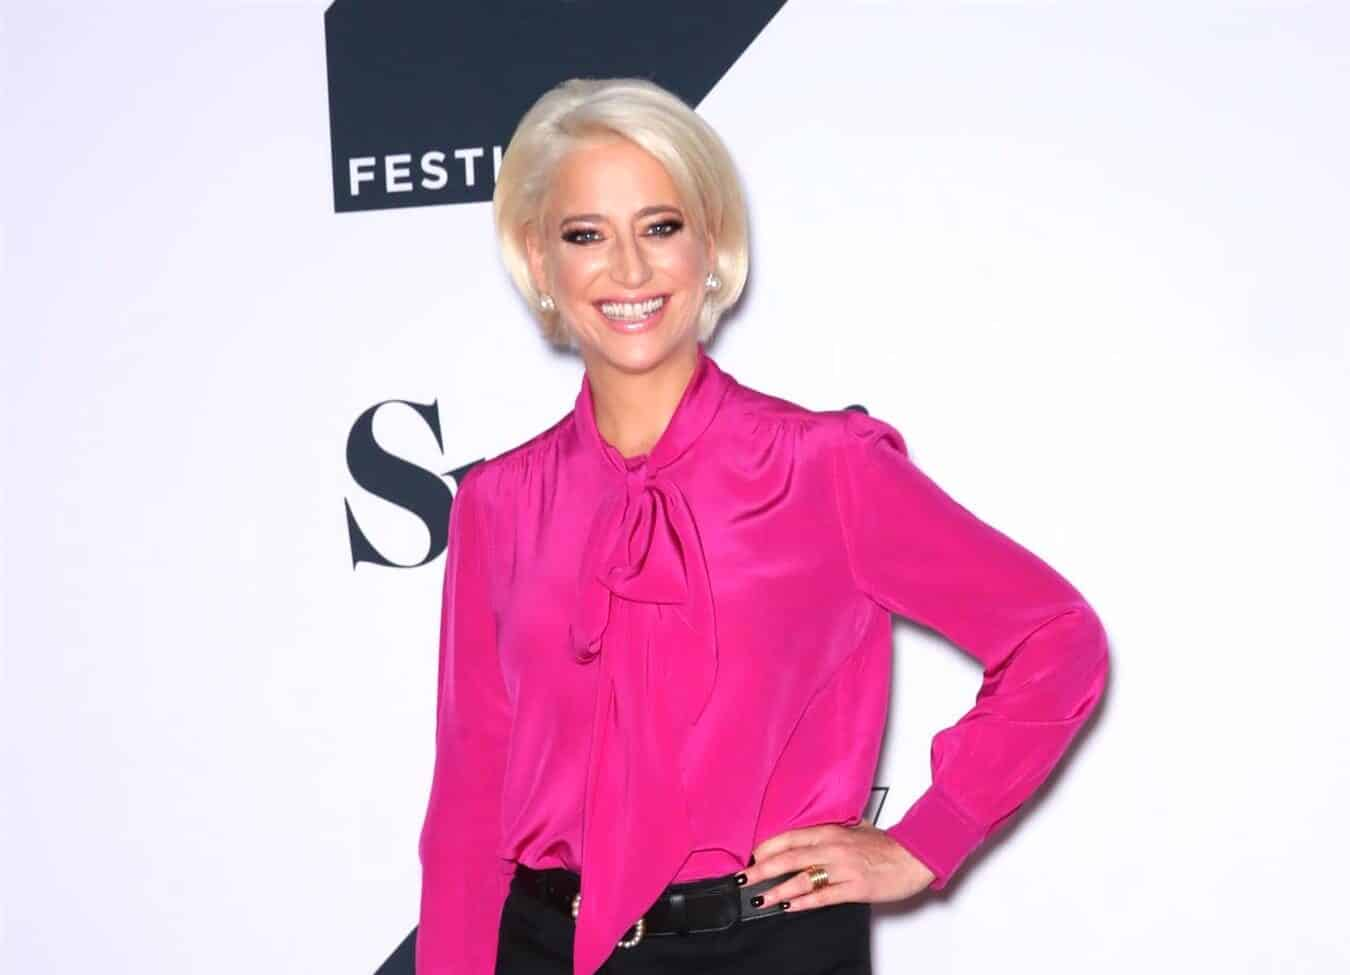 REPORT: RHONY Producer Refused to Work With Dorinda Medley Due to Her 'Nightmare' Behavior as She's Accused of Being 'Awful' to Production